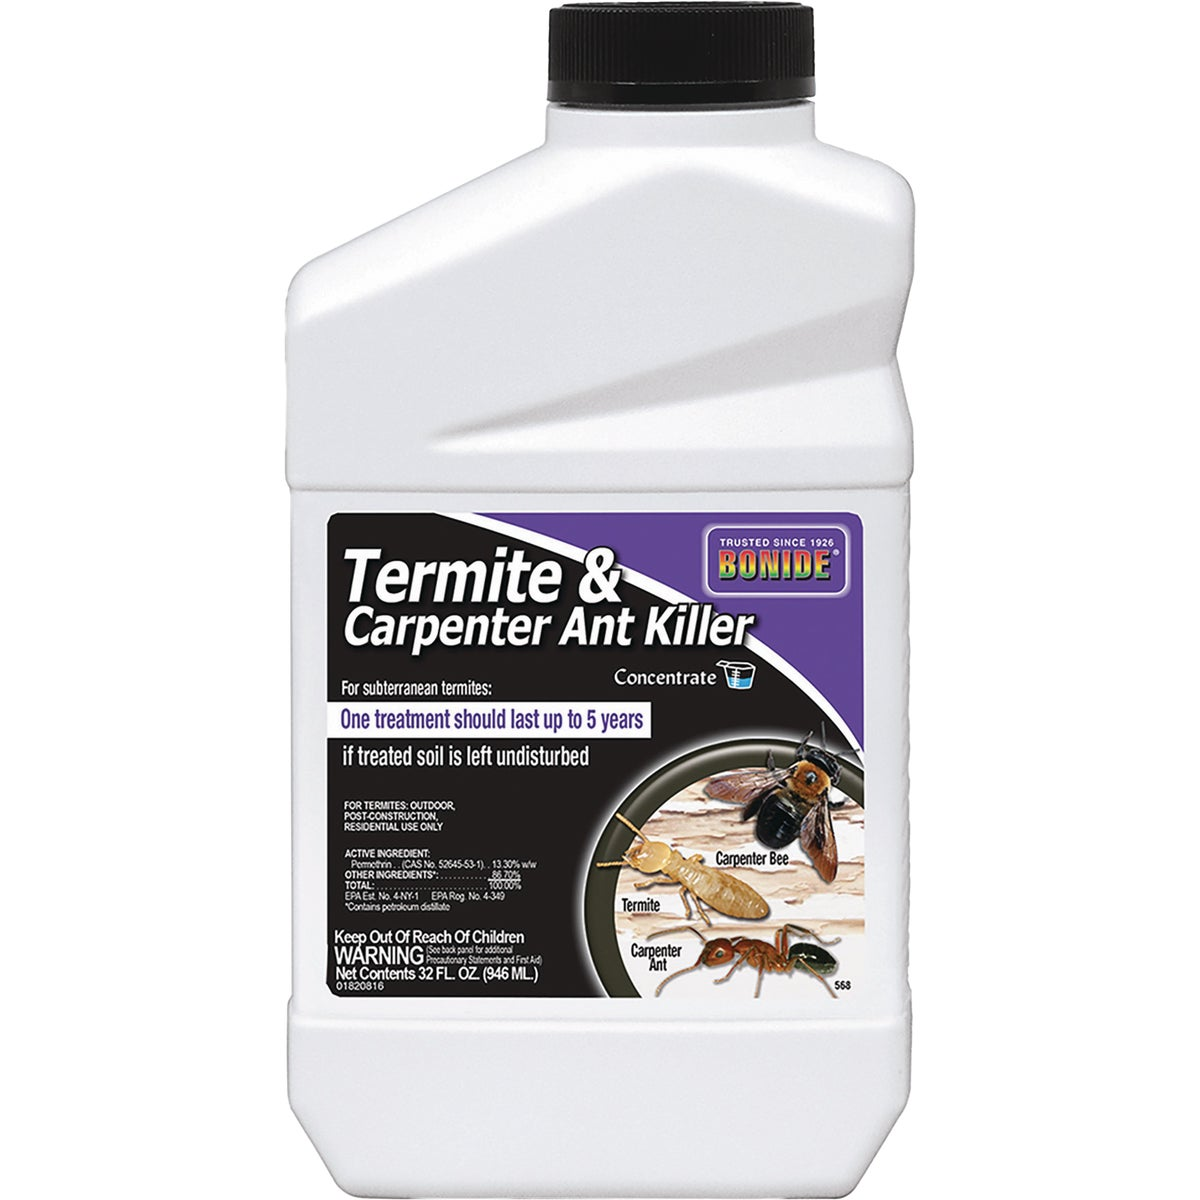 QT ANT/TERMITE KILLER - 568 by Bonide